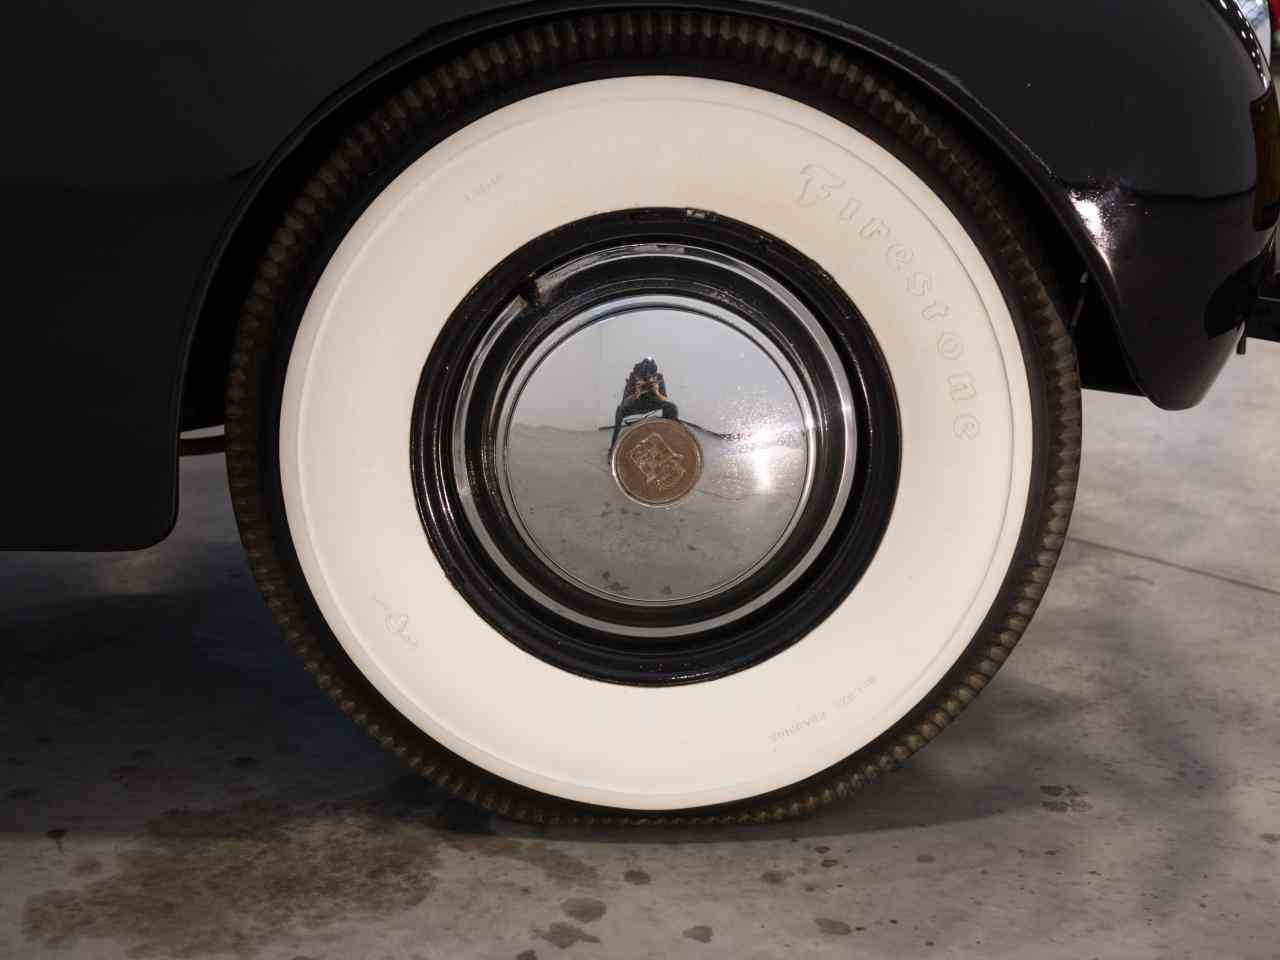 Large Picture of '39 Cadillac 7 Passenger Touring W/ Trunk - $58,000.00 Offered by Gateway Classic Cars - Milwaukee - KHP0